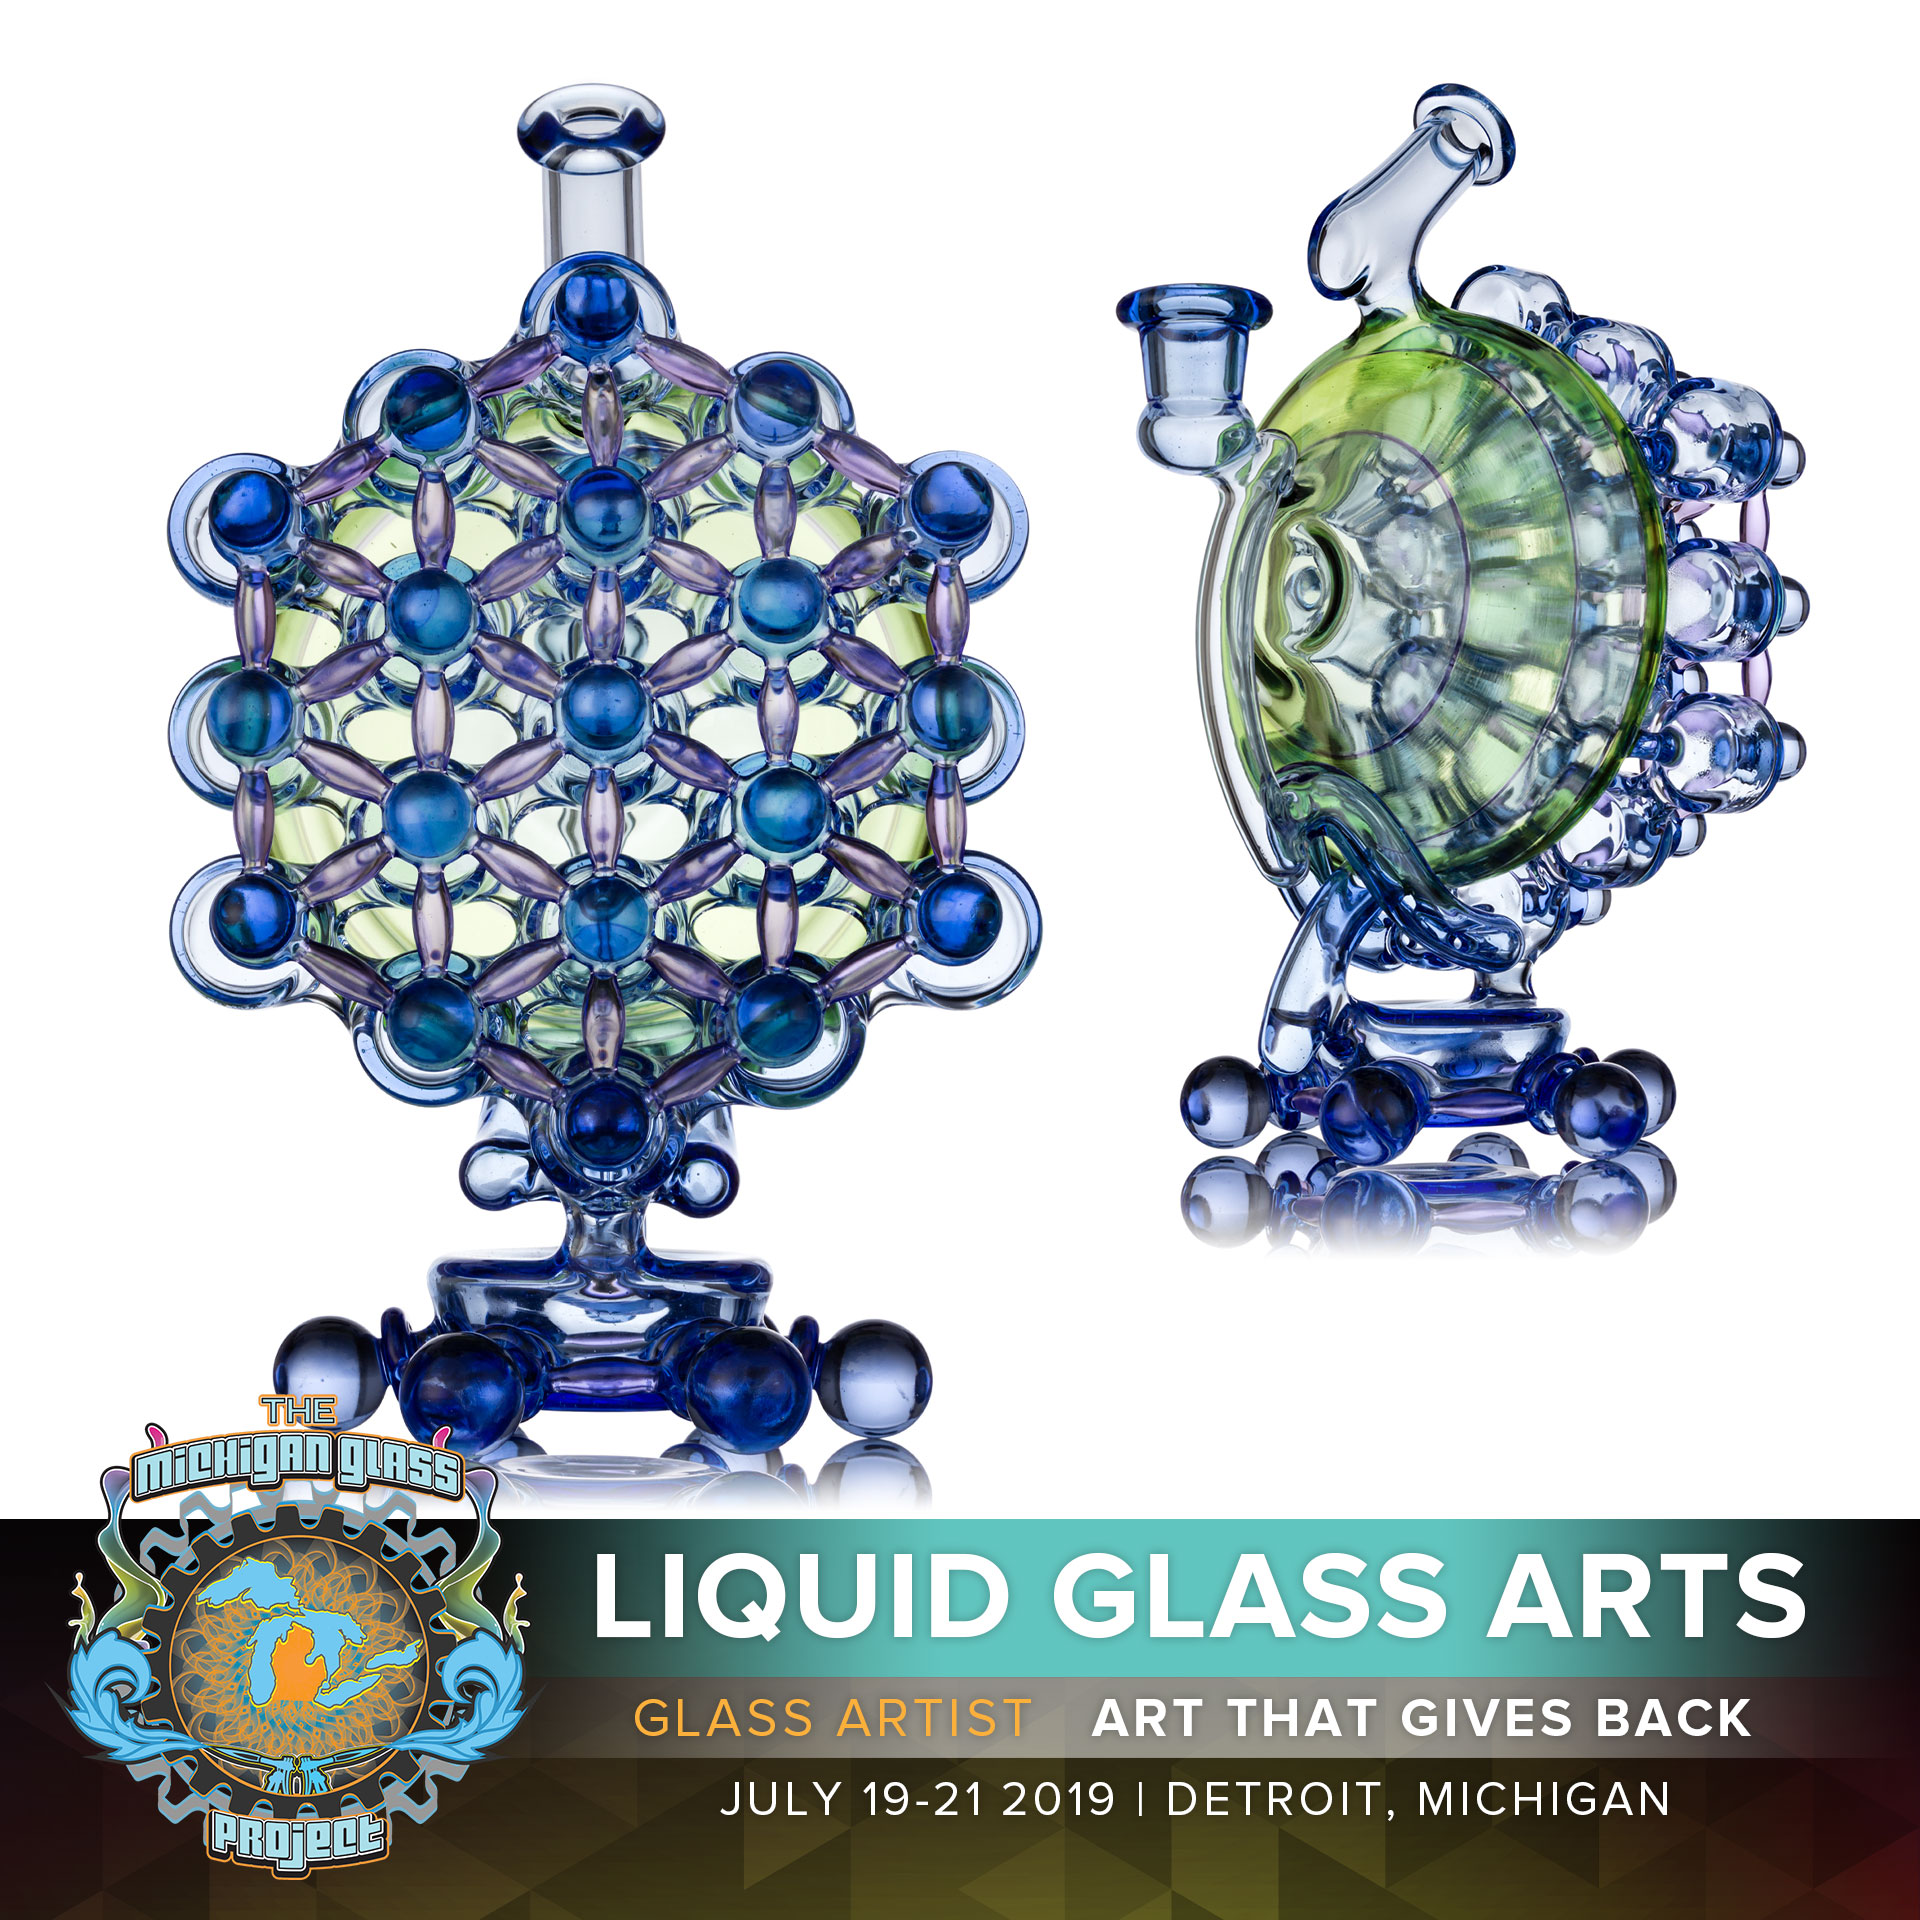 Liquid-Glass-Arts_Shoutout